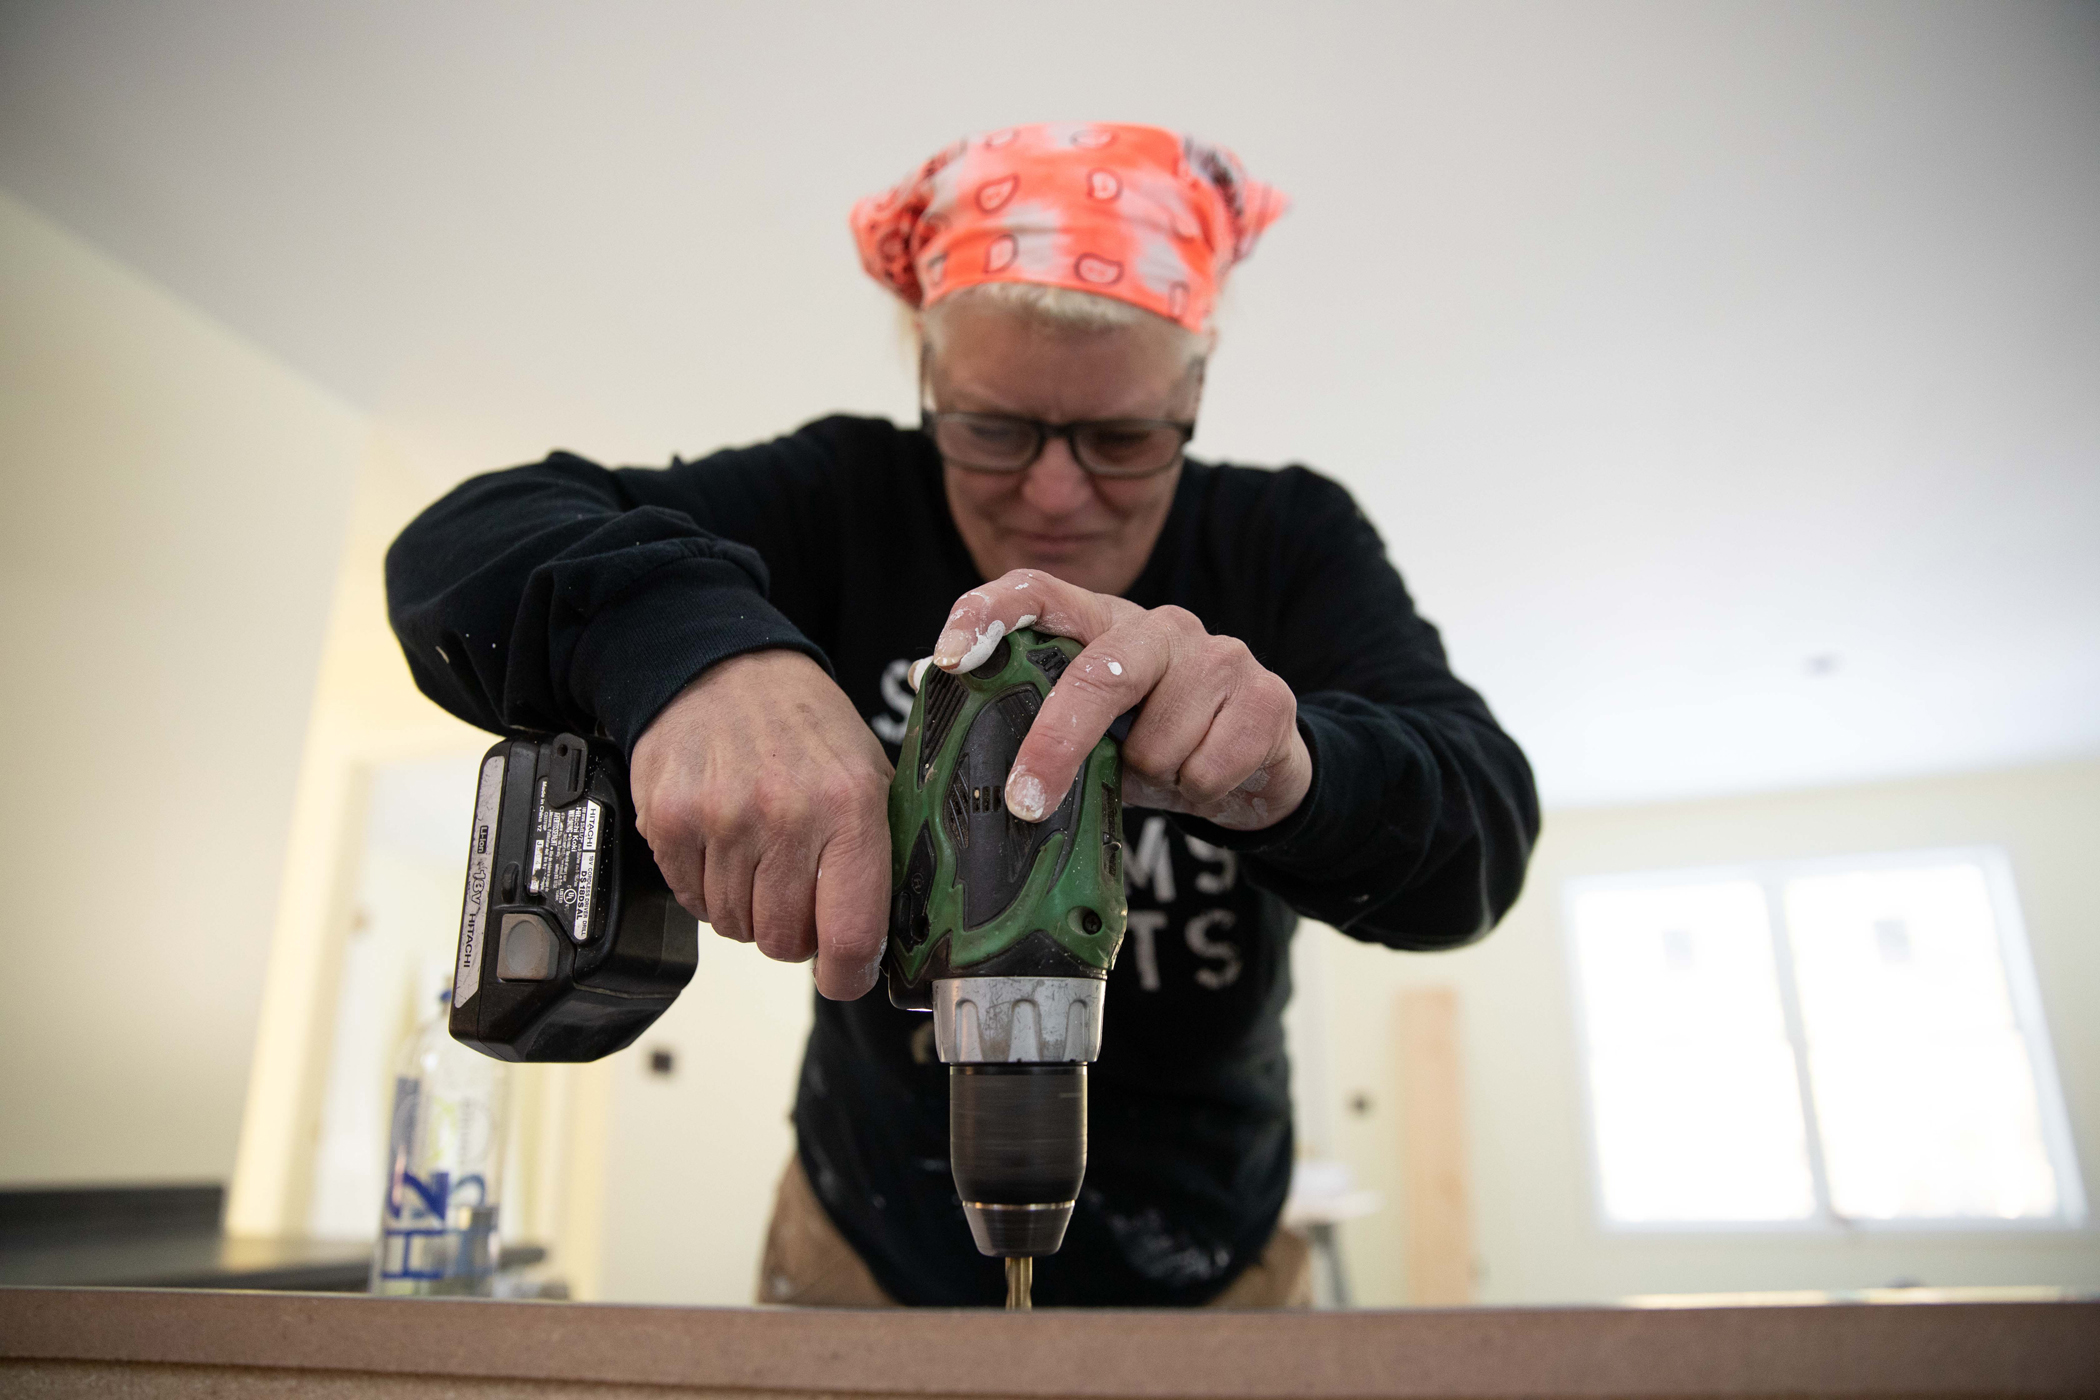 As part of a self-help housing program, a Main woman uses an electric screwdriver to build her home.